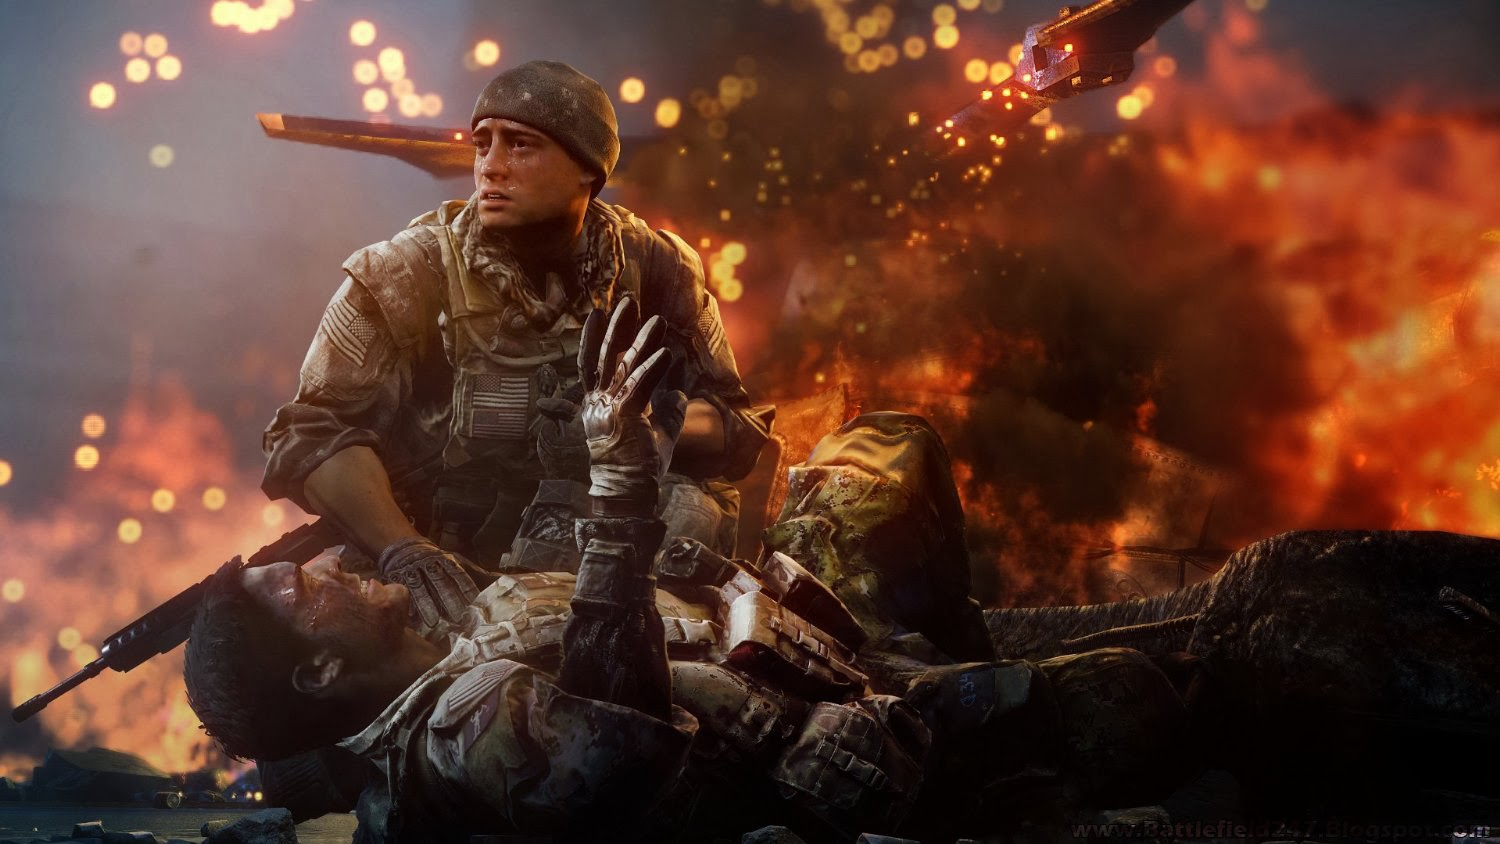 BF4 The Crash Helicopter Soldiers Battle Fire Burn Background Wallpaper 1500x844